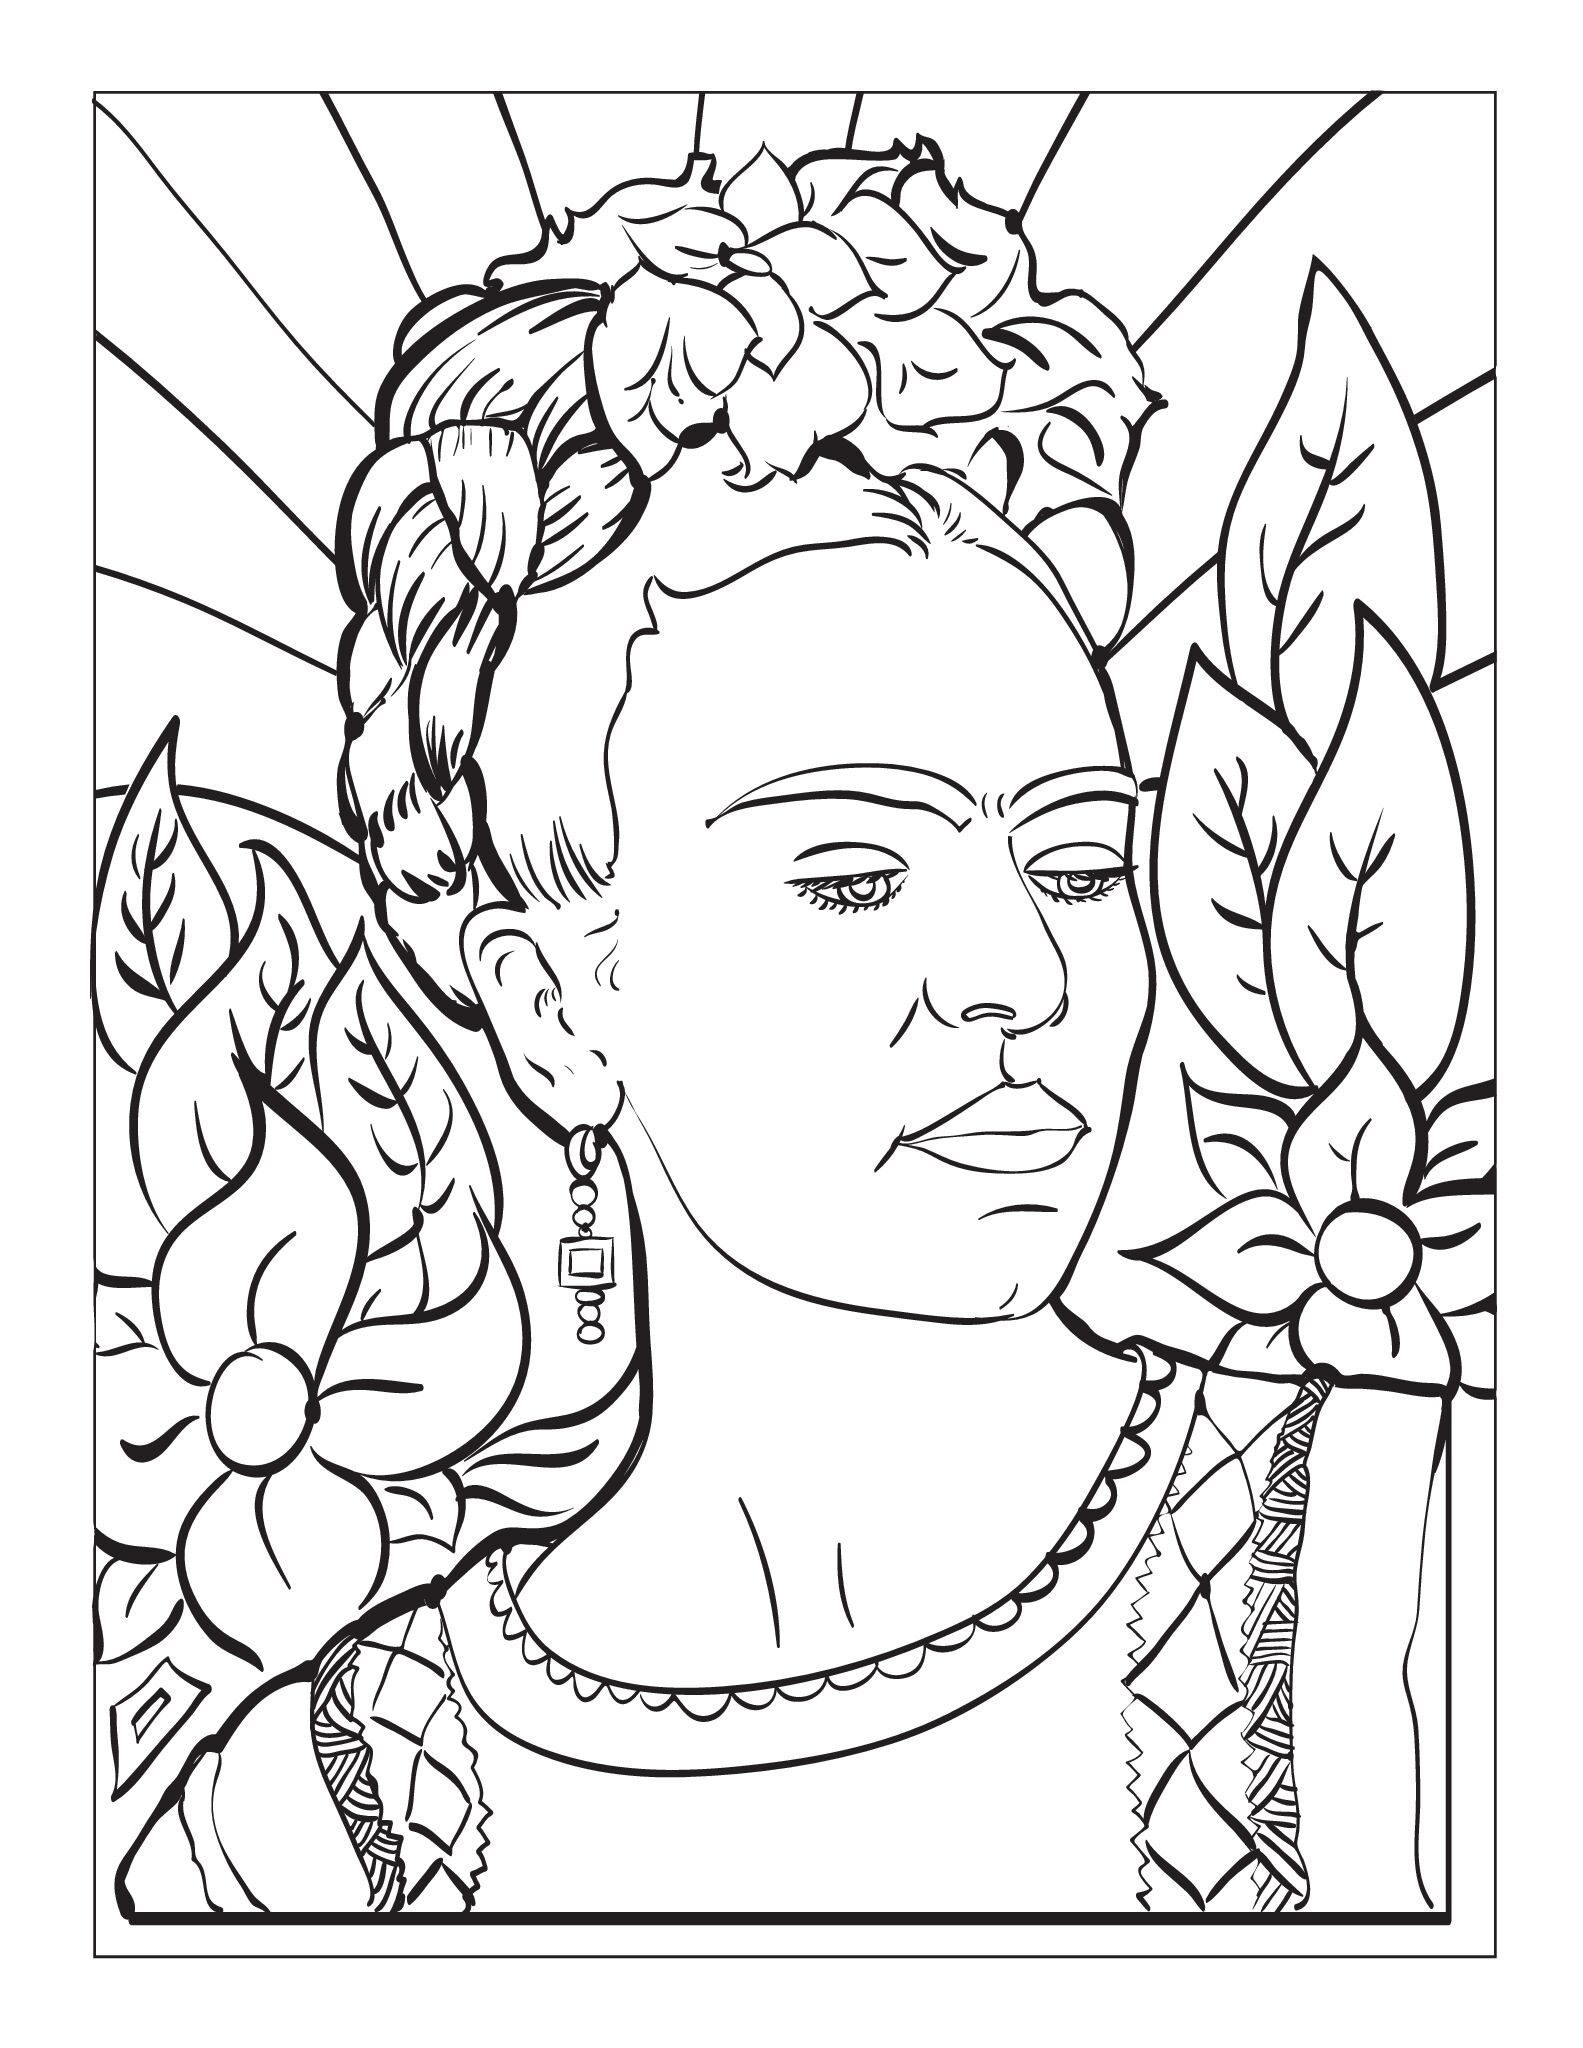 Frida Kahlo coloring page  Art history lessons, Kids art projects